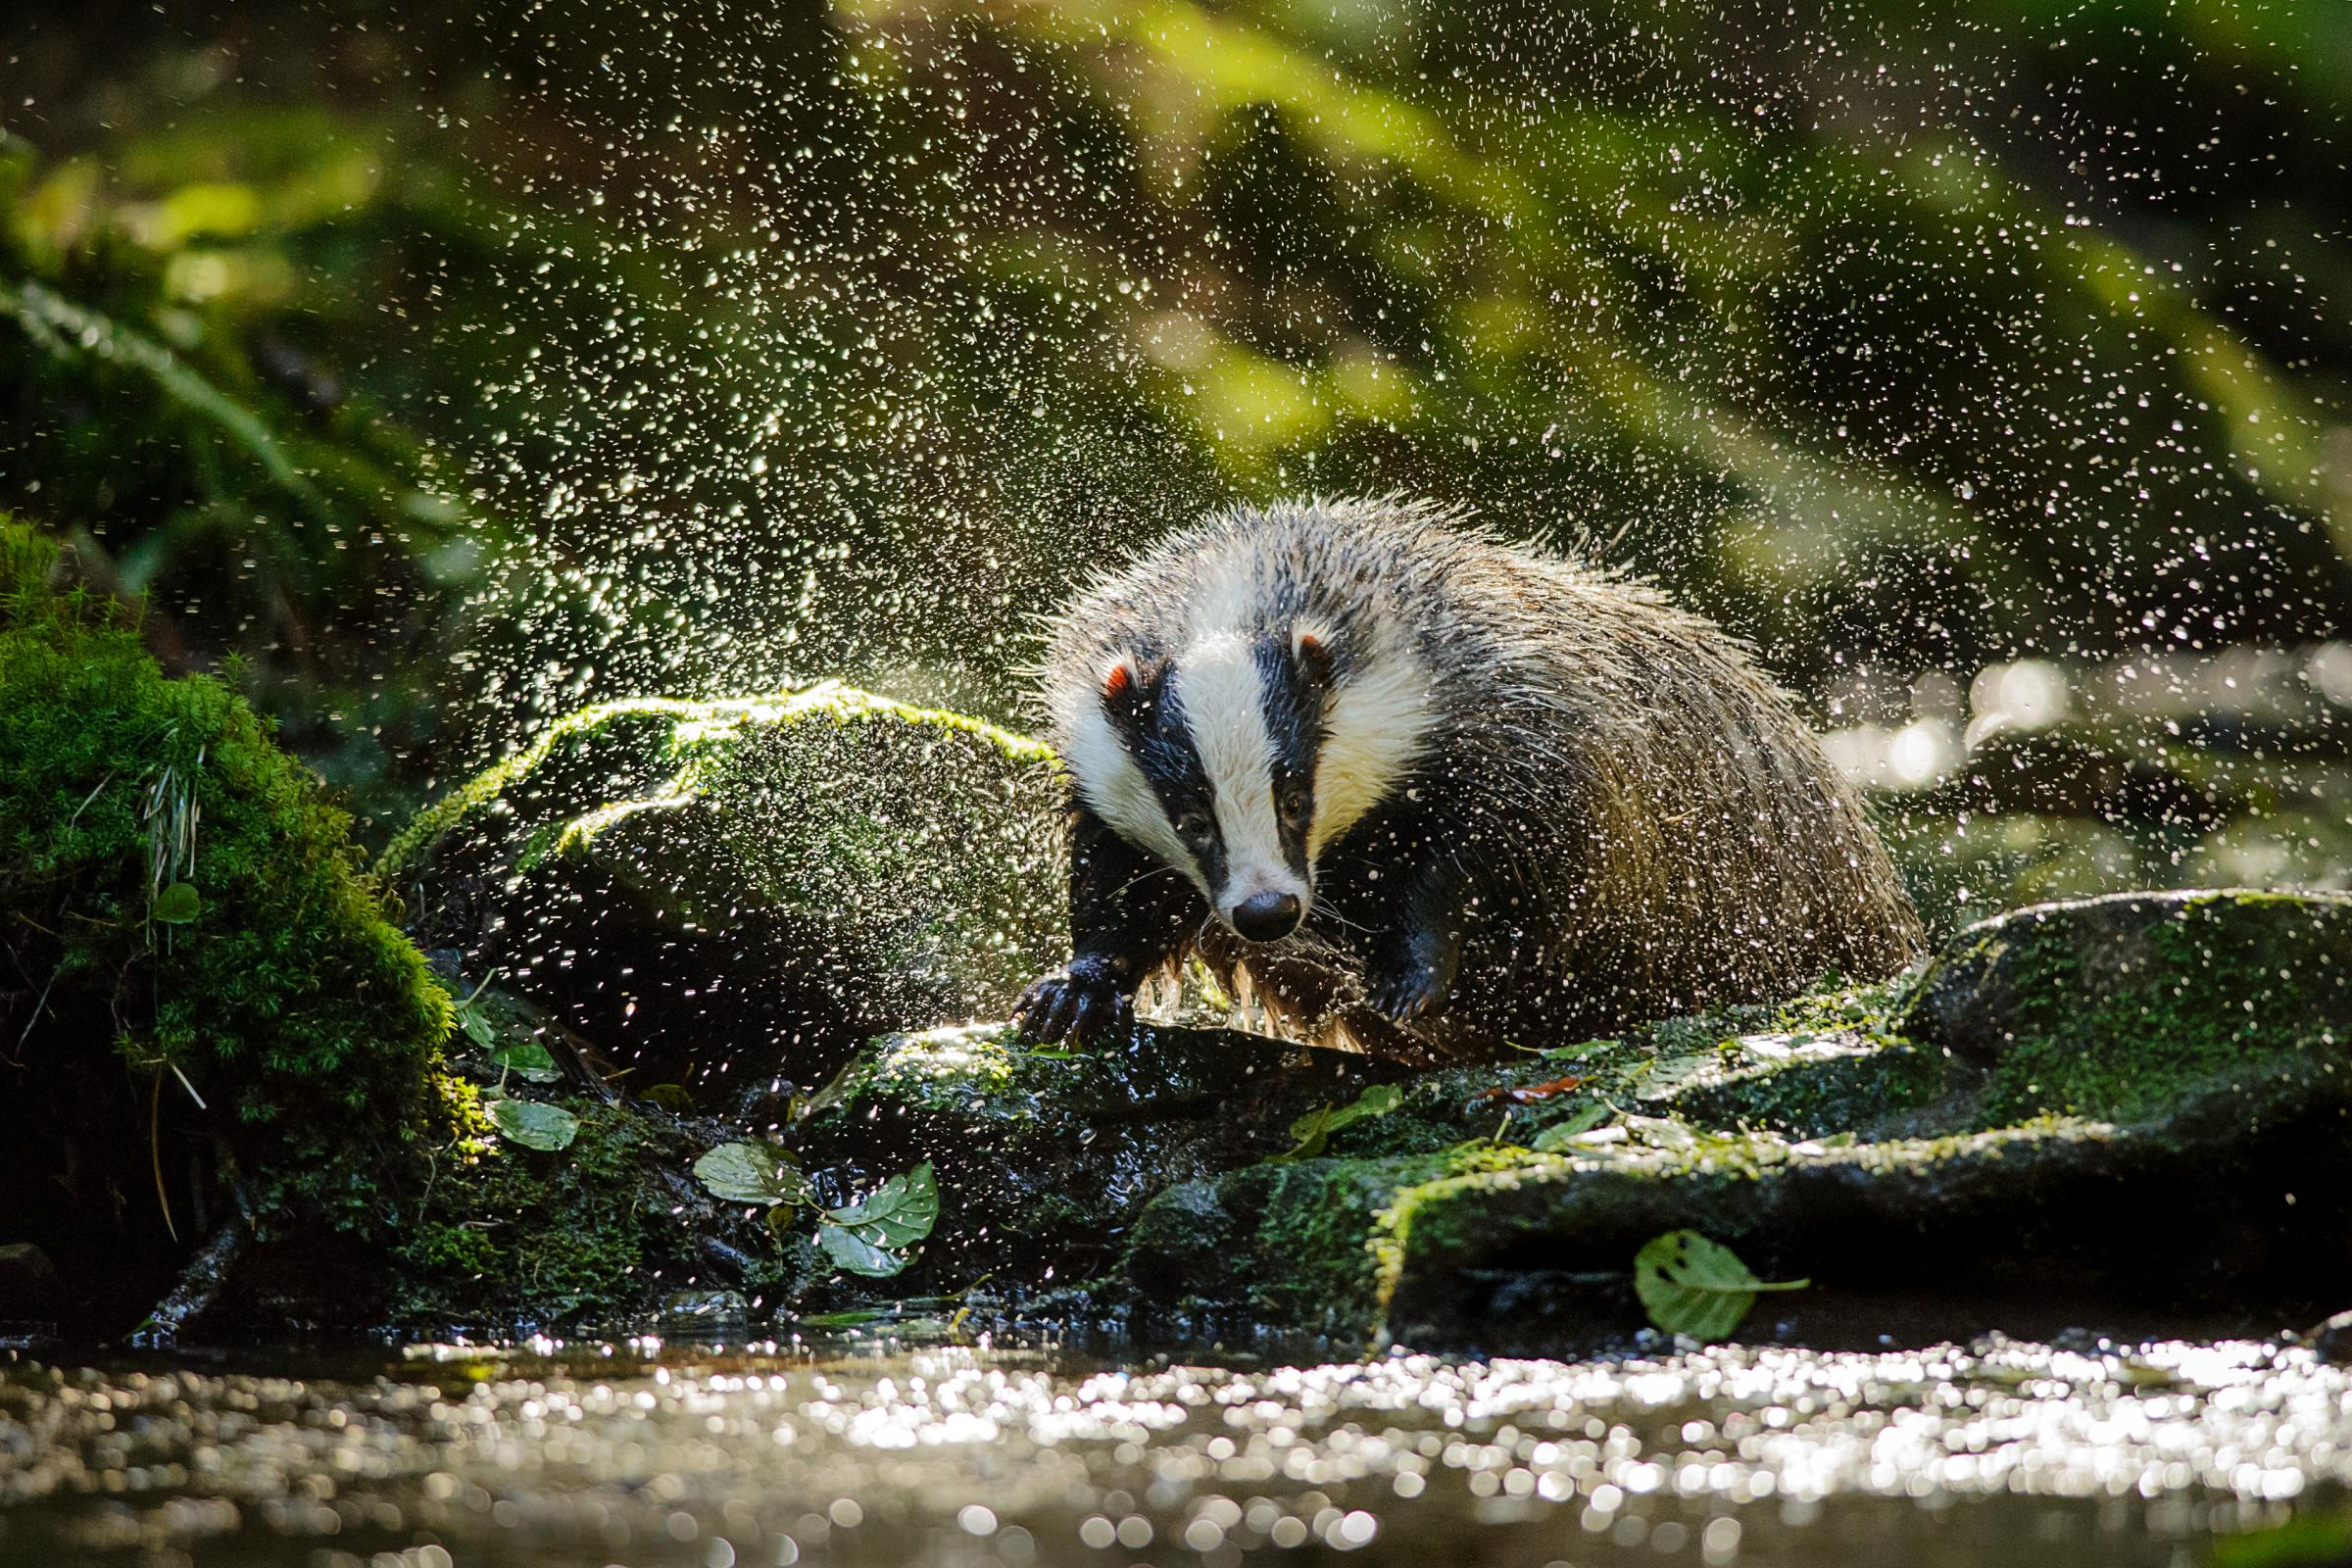 BVA and RSPCA concerned for badgers trapped in cages during